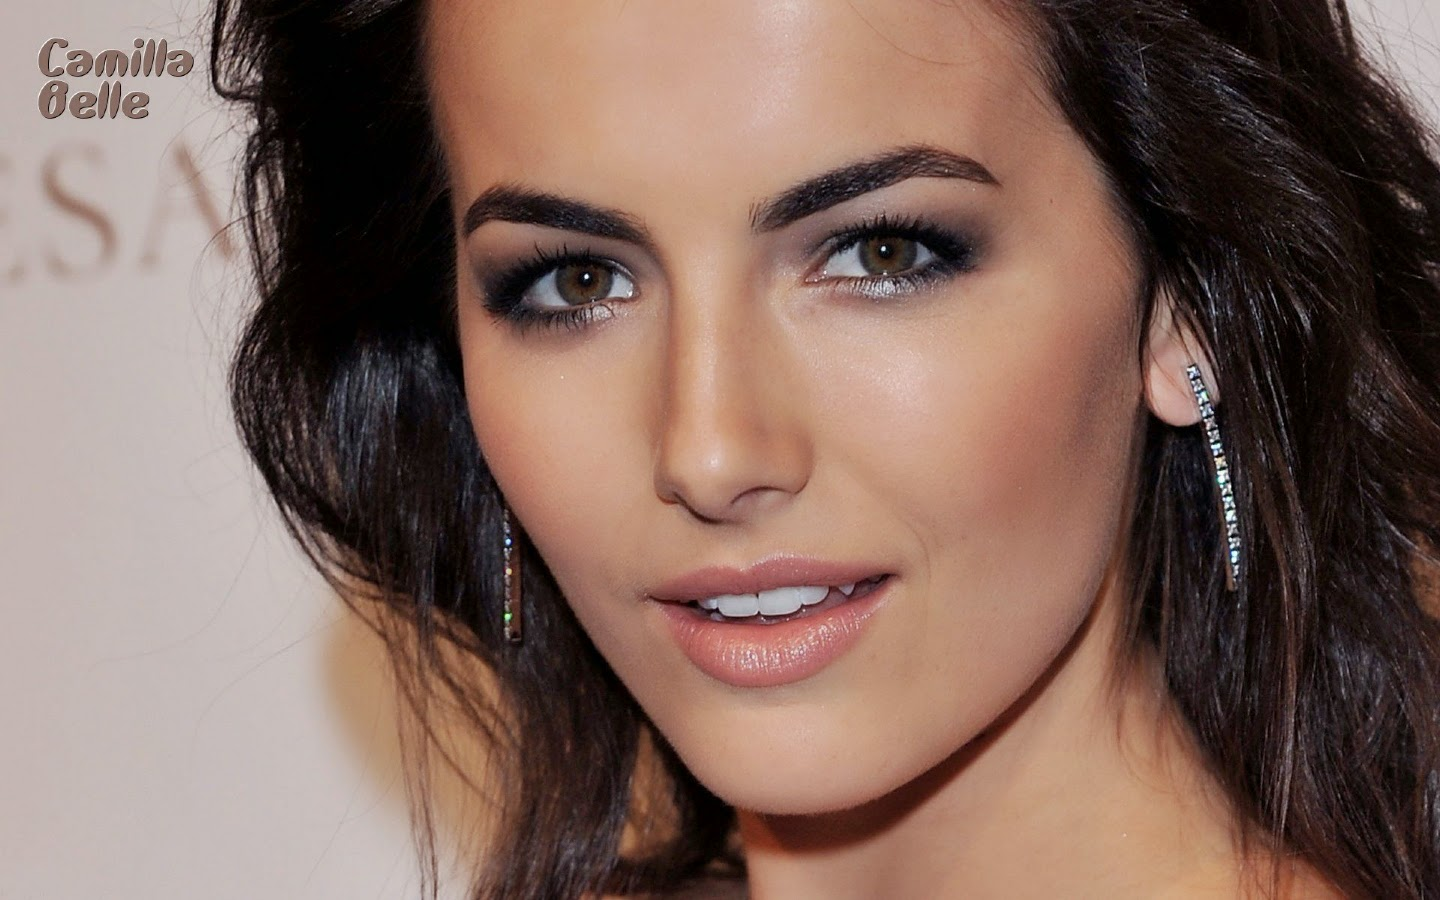 CAMILLA BELLE_WALLSTOWN_IN_HOLLYWOOD ACTRESS_HOLLYWOOD CELEBRITIES